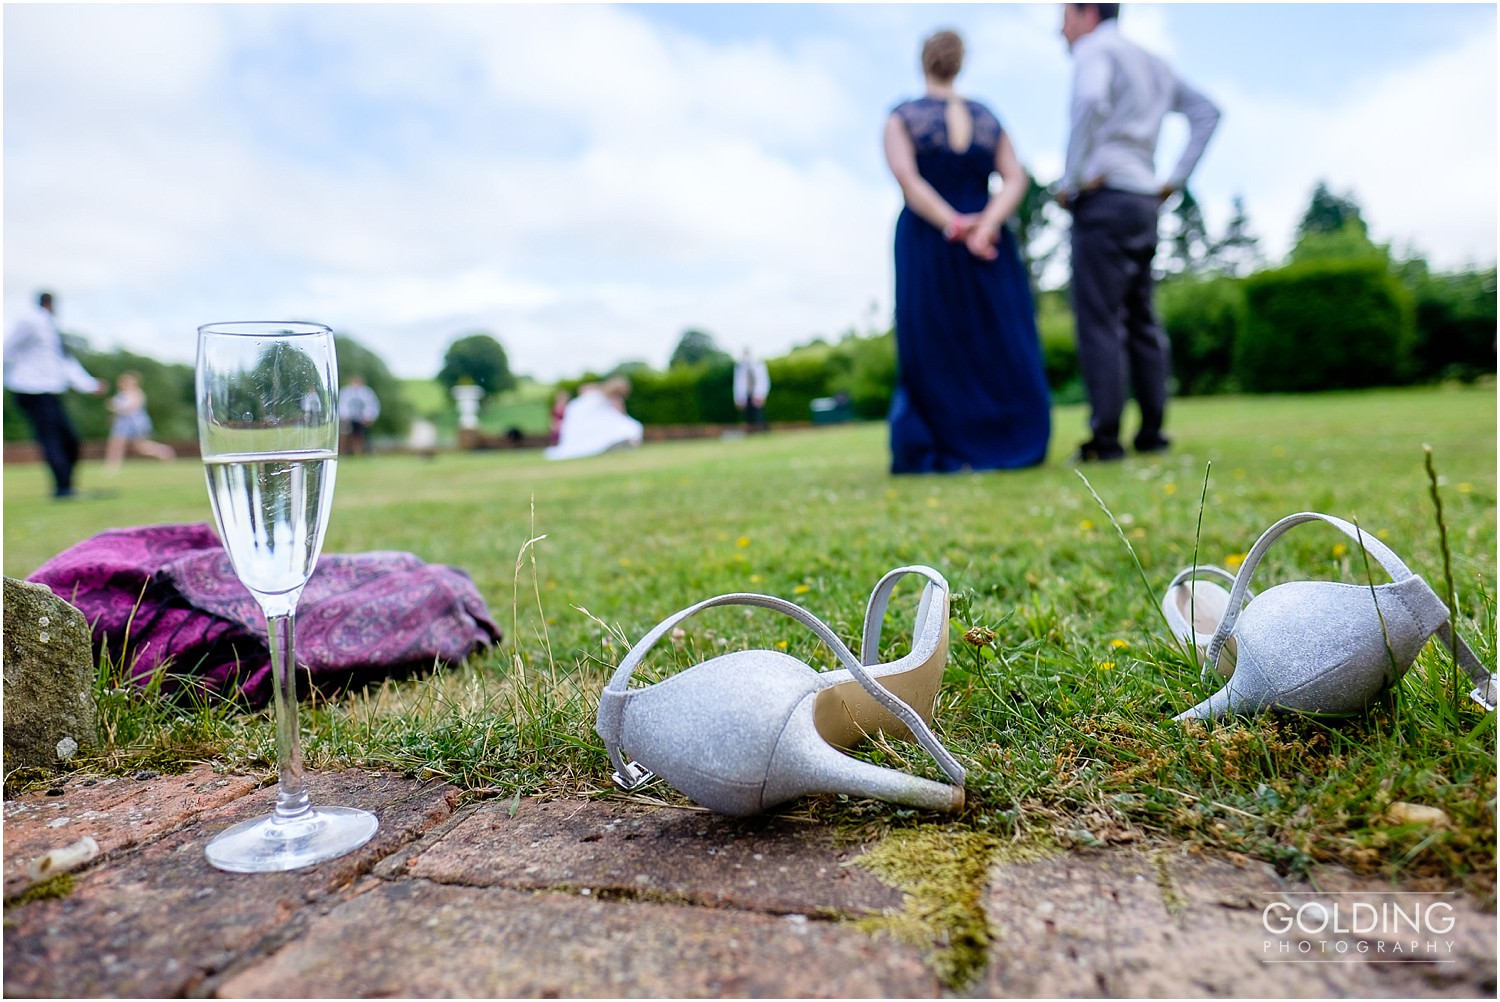 Wedding shoes kicked off for a game of rounders